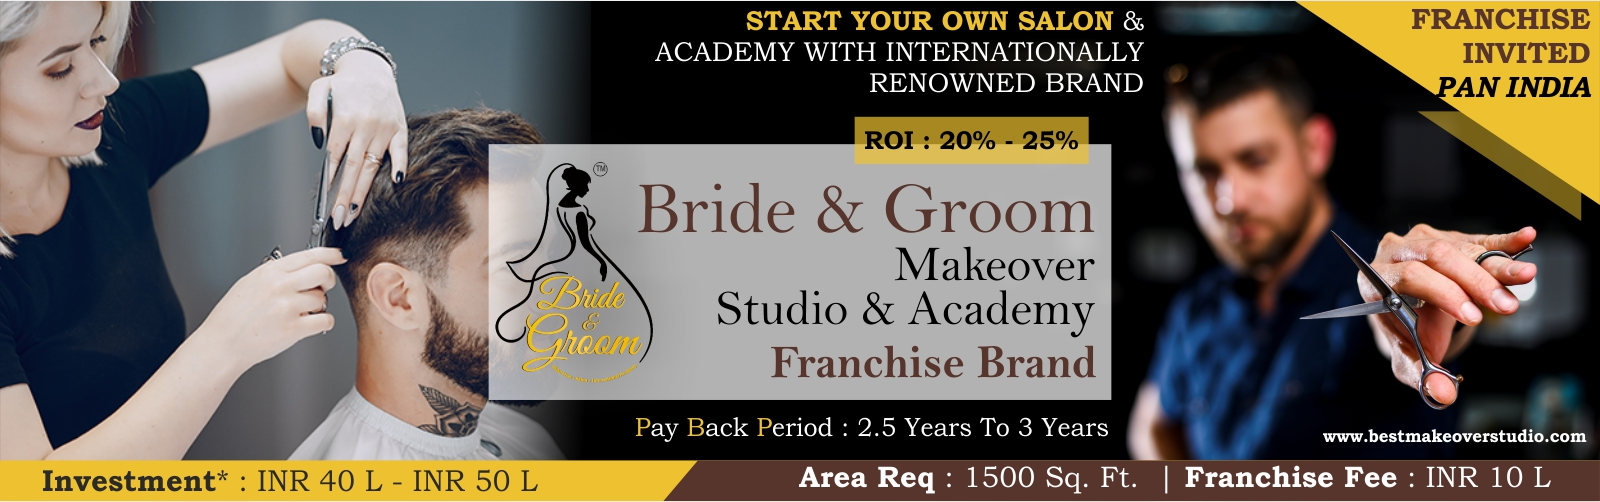 admin/photos/Bride & Groom Makeover Studio & Academy